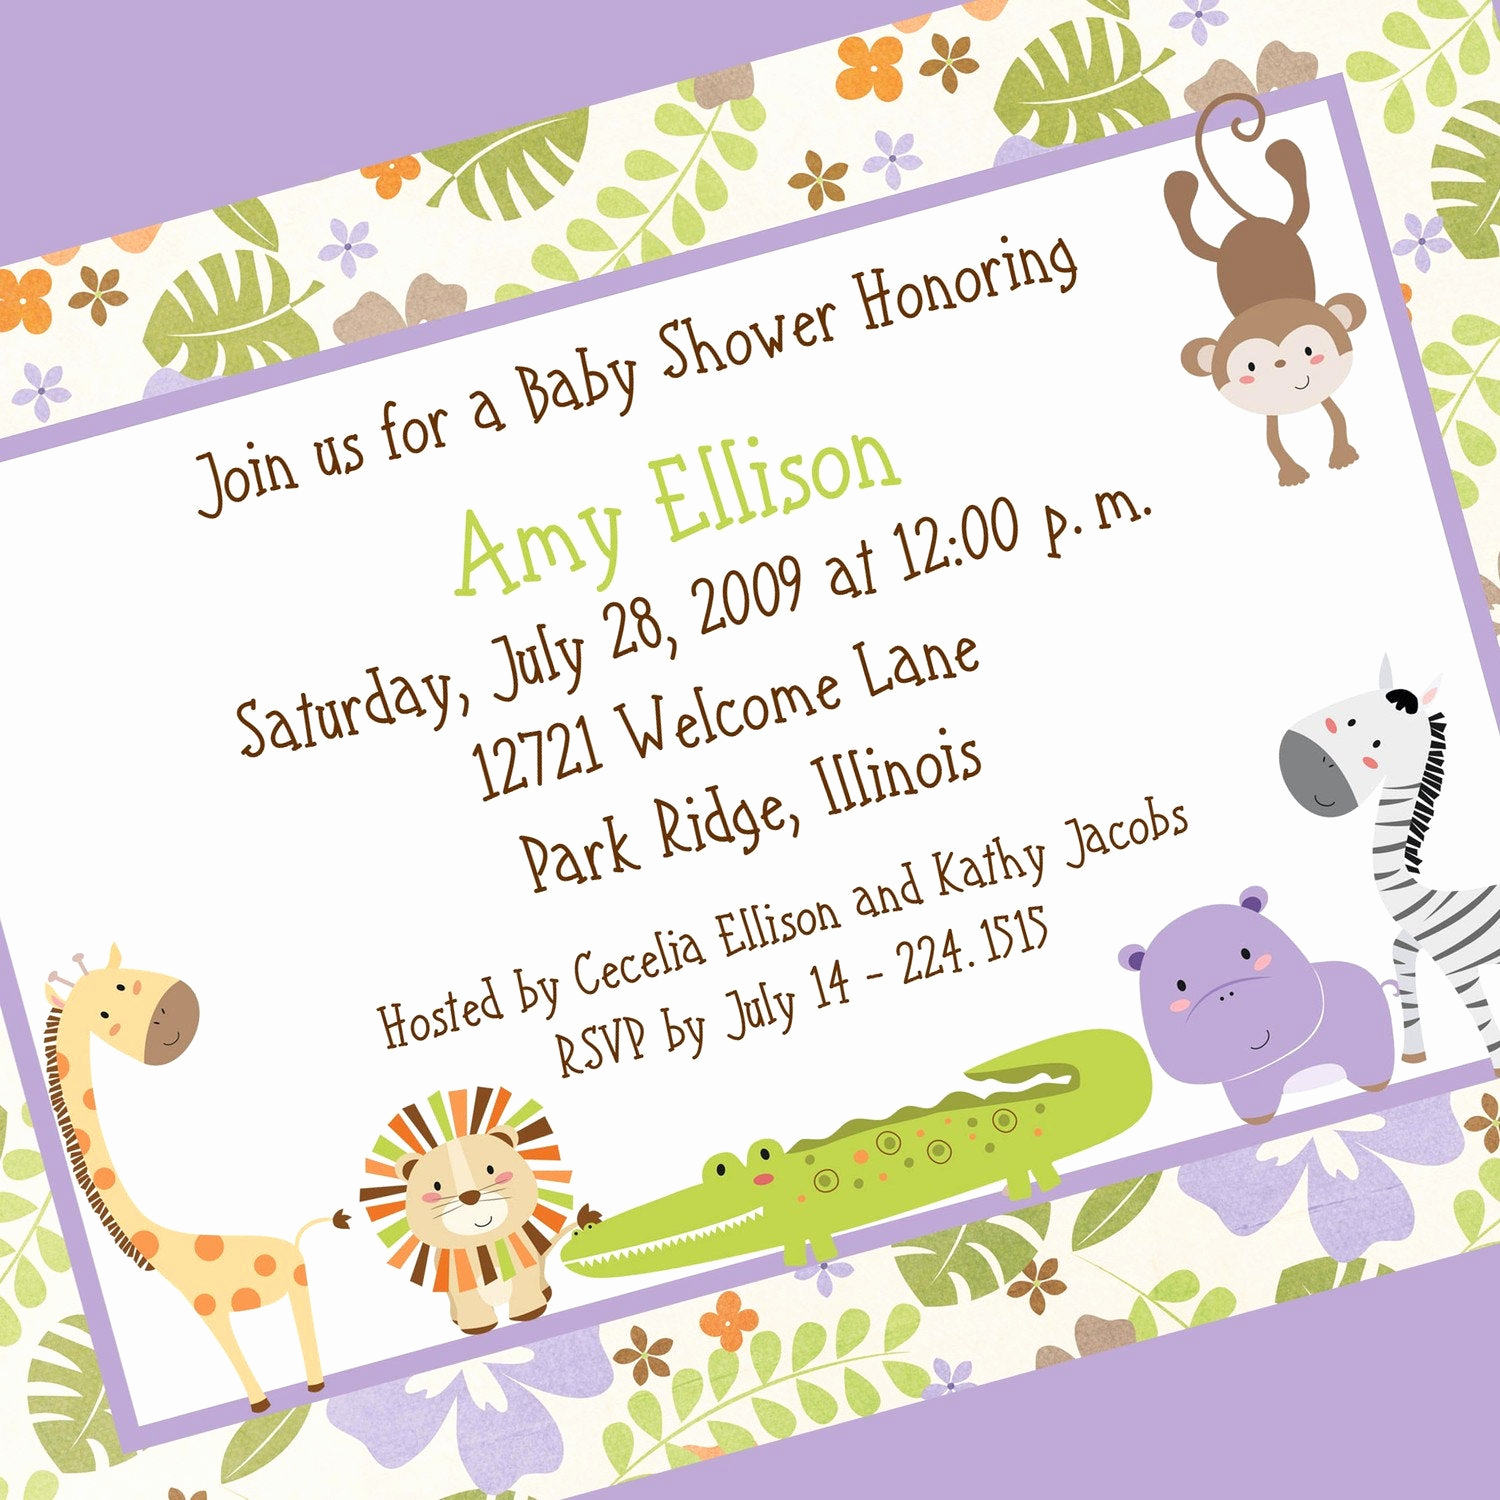 Baby Shower Invitation Example Best Of Floral Jungle Baby Shower Invitation Printable by